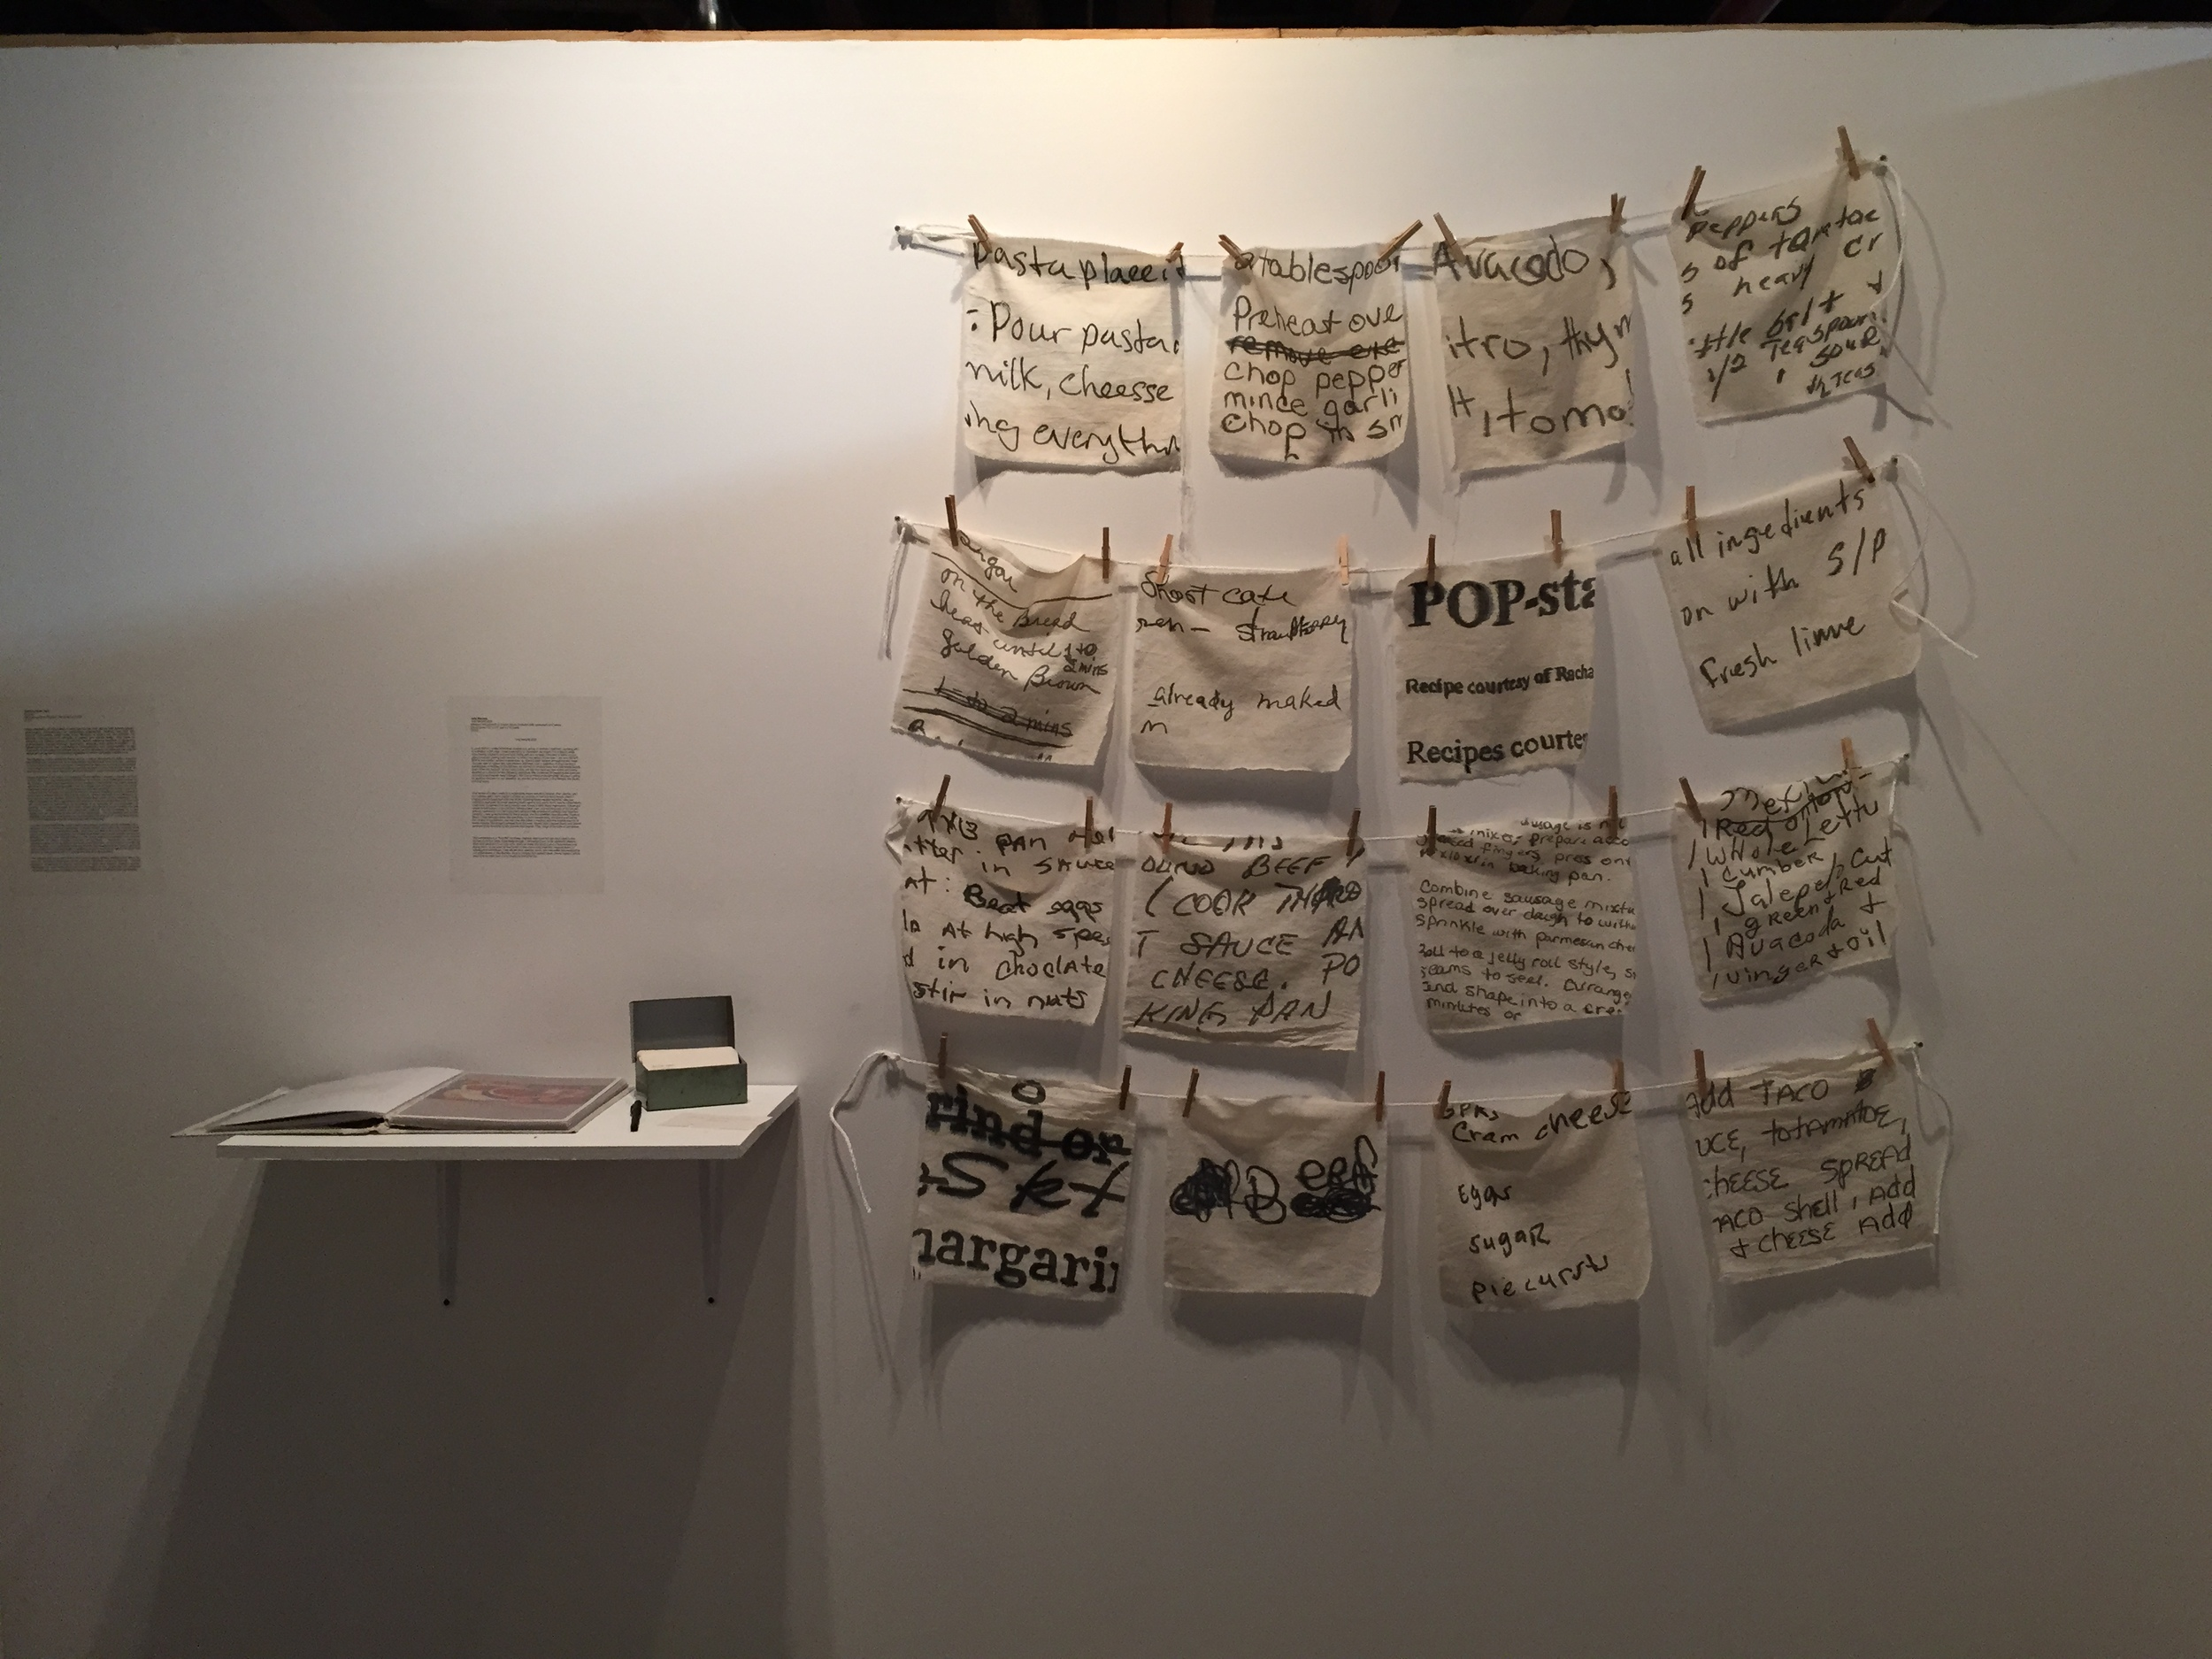 "Julia Rooney THE RECIPE BOX Medium: Ink painted on cotton fabric; installed with clothespin and twine Dimensions: 12"" x 12"" each; (16 total) 2015  Statement: In June 2014, I mailed individual recipes to a group of women I had been working with at a shelter in Brooklyn. I was inspired by a discussion we began the previous week about family traditions around food. Along with the recipes, I included a blank card in every envelope, asking each woman to share one recipe of her own. I set up a RECIPE BOX at the shelter, where I asked them to deposit their recipes throughout the week. The plan was to collect the submissions and then cook a selection of them during a subsequent workshop. In the kitchen, we worked in small groups and collectively taught each other the recipes. At the dining table, we ate the meal we had made, and jointly decided on a theme for the following workshop. We continued throughout the summer, and at the end visited Judy Chicago's The Dinner Party at the Brooklyn Museum, giving us another context for our identities as women, and our work in the kitchen, the studio and the world. ***This series of cotton napkins is inspired by these women's recipes, their stories, and our collaboration. Each napkin includes an excerpt of one woman's recipe, which I traced and hand-painted onto the fabric. Cooking these recipes together was our collective approach to understanding them: where they came from, how to make them, what their significance to each woman was. It was a fairly literal experience, following a recipe's instructions in the kitchen. Months later, I am now working solo in the studio, and my experience has become more abstract. My process of painting their text has become a new gesture towards these words and the activities they describe. Painting them, I have thought about the specificity of one's handwriting, the spacing of words, the choice of ingredients, the way one describes a method, and the original source of these recipes. Some were printed from the web, others were passed down, and others seemed to be invented by the women themselves. This range of formats is expressive.***This installation is a ""first life"" for these napkins: they have not yet been used in the kitchen or at the table. Essentially though, I conceived them to be utilitarian objects. After this exhibition, my hope is for them to enter the living space of the kitchen and dining room, to be used by the hands of the community that first inspired them. In subsequent workshops, they will become stained, worn, and ultimately personalized by our experiences in the kitchen. Just as recipes are passed down, these napkins will be used and re-used over many meals, by many hands."